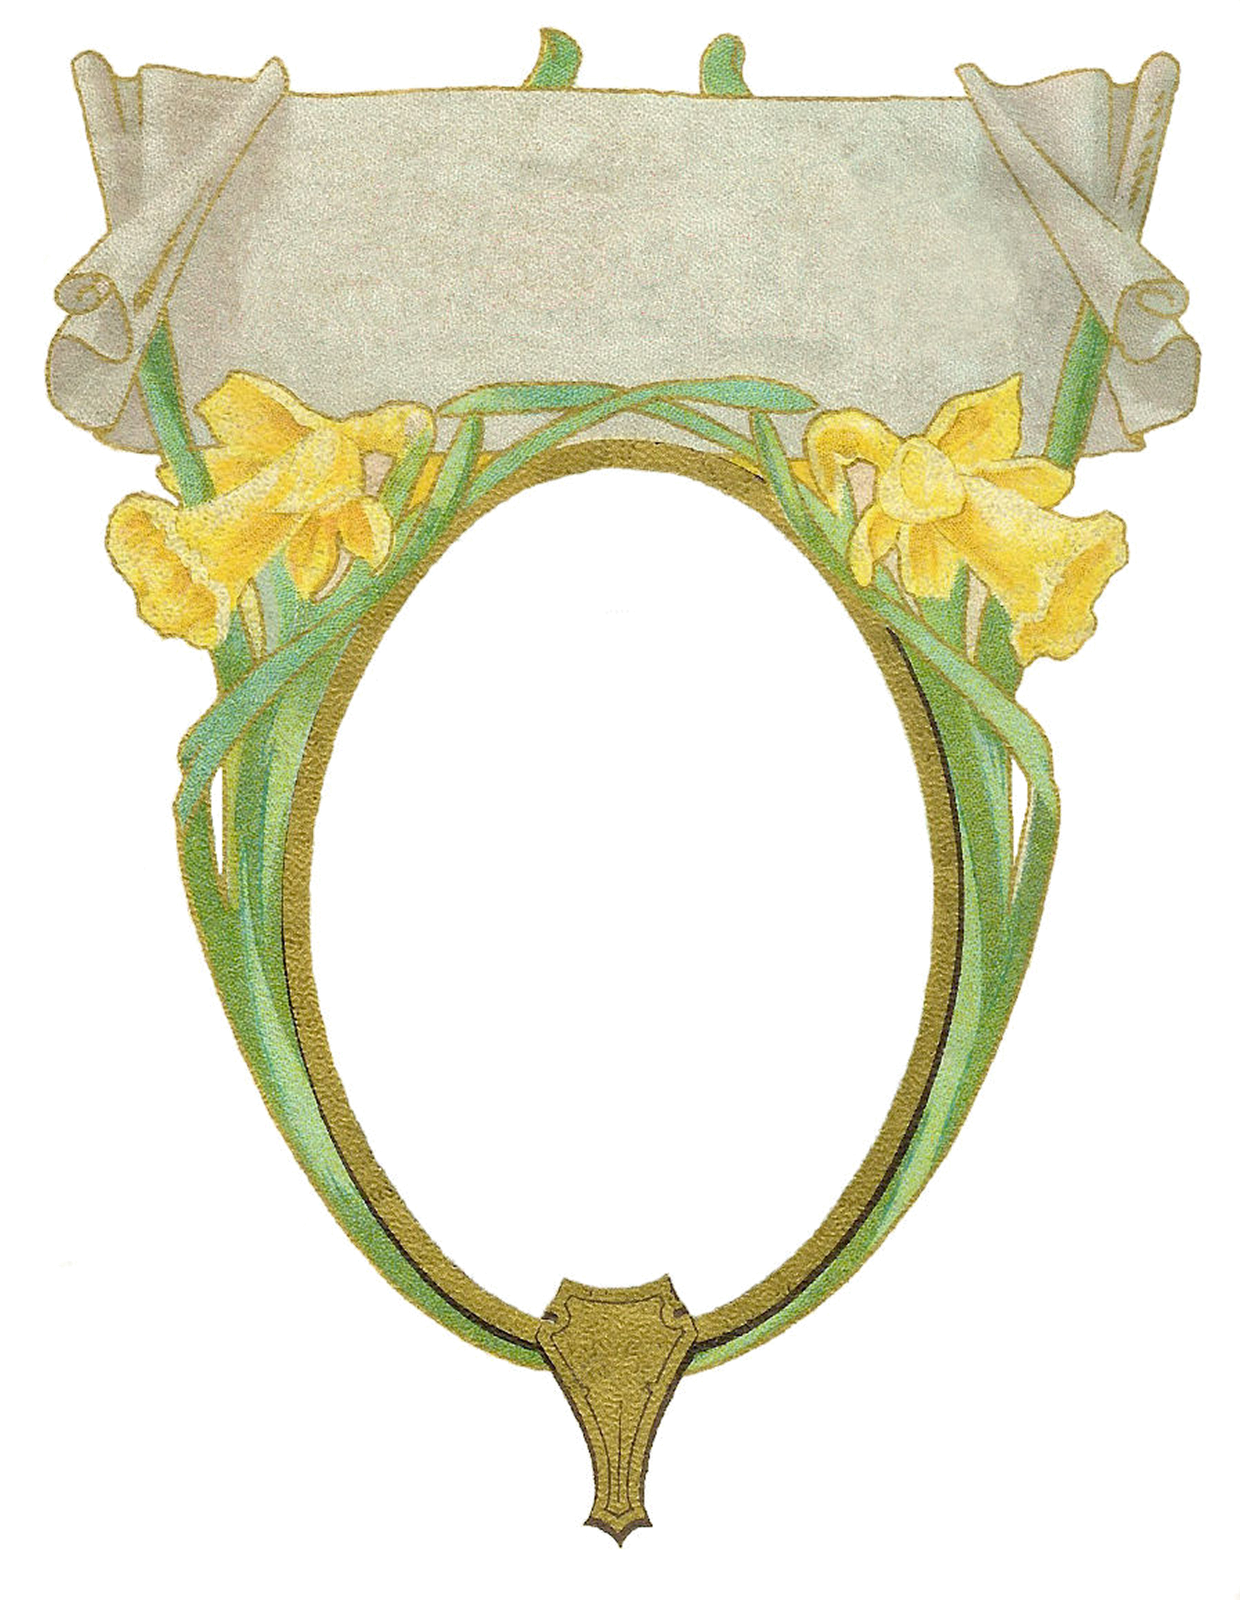 Free Vintage Frame Graphic: Circle Frame with Yellow Iris and Scroll